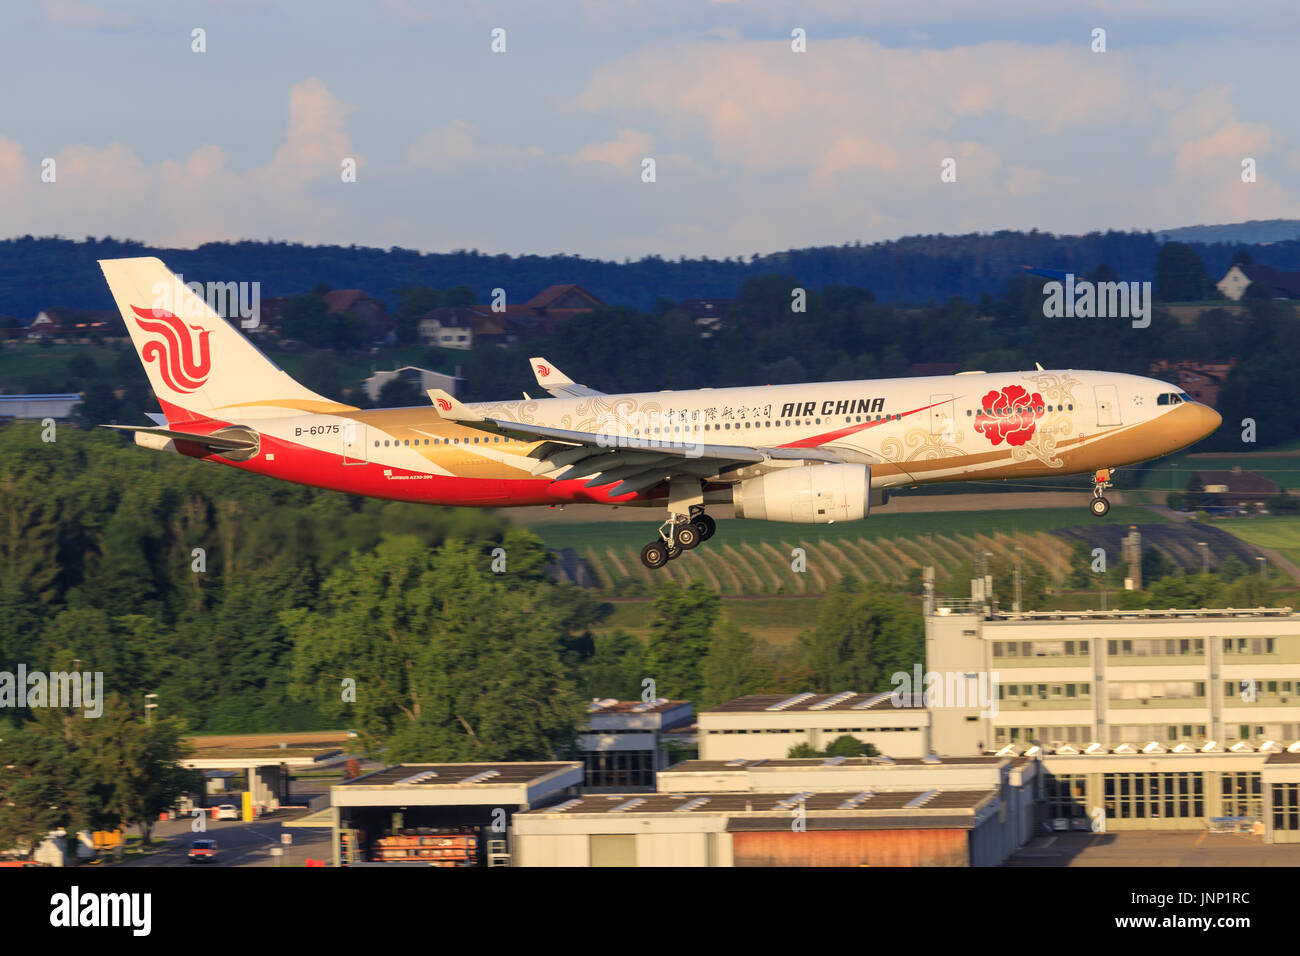 Zürich/Switzerland July 30, 2017: A330 from Air China at Zürich. - Stock Image